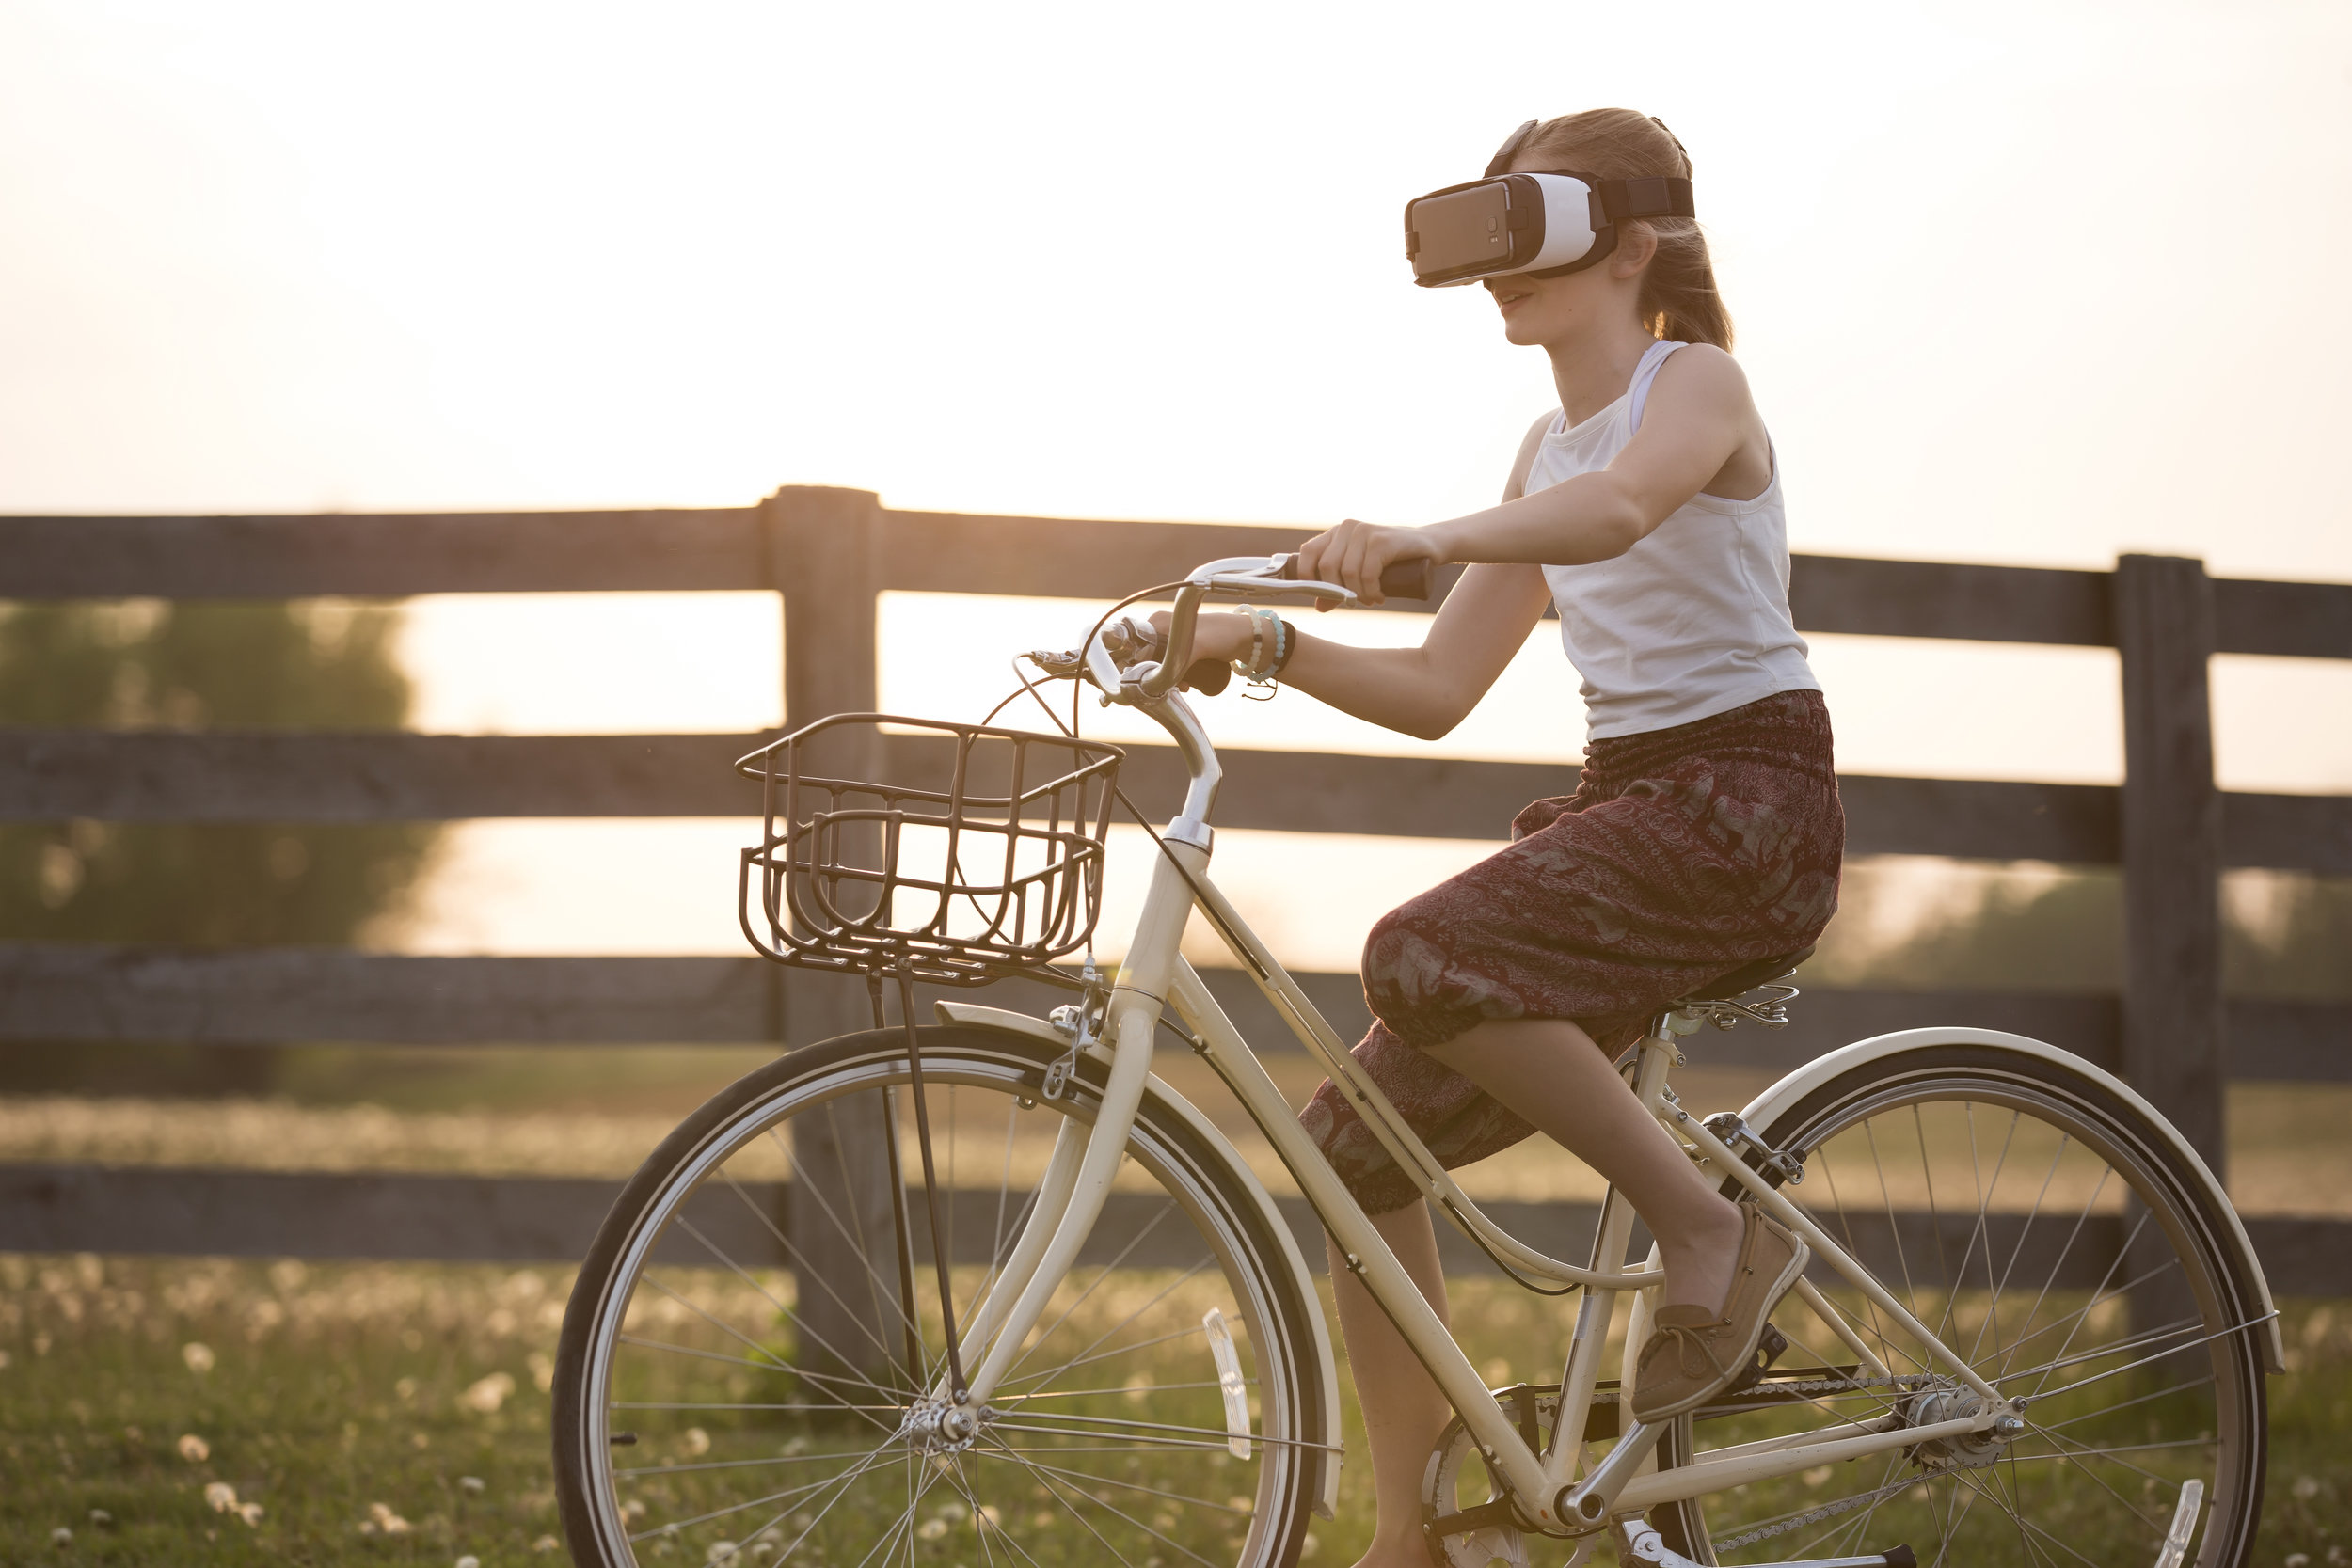 Virtual Reality will soon be applied to everyday life